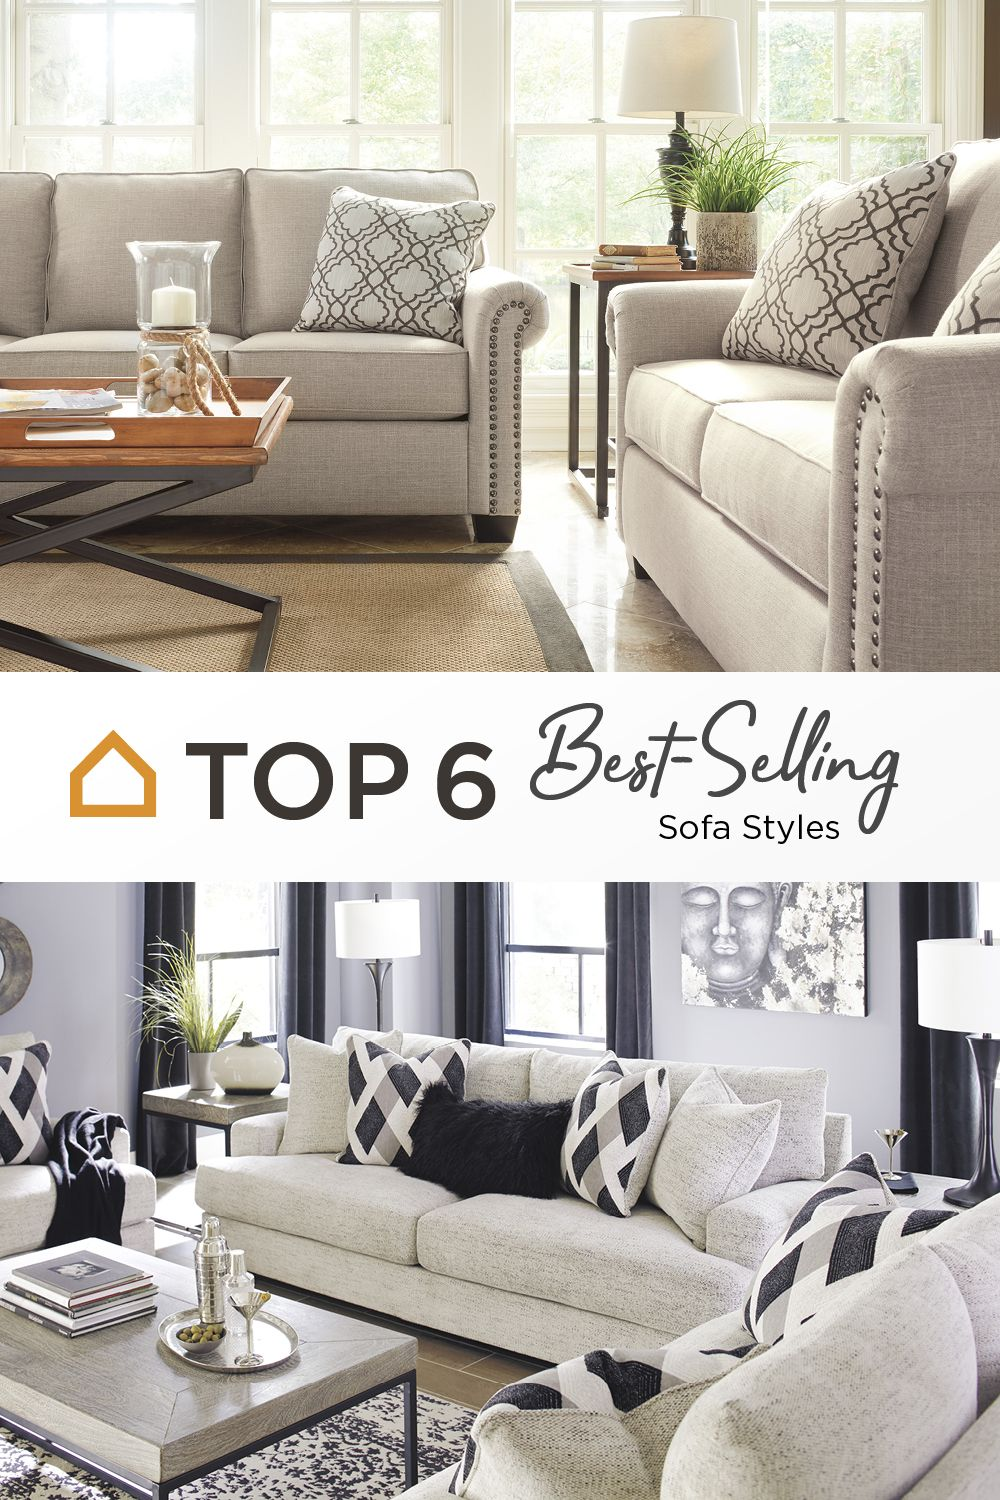 Top 6 Best Selling Sofa Styles in 2019 | Sofa styling, Sofa ...